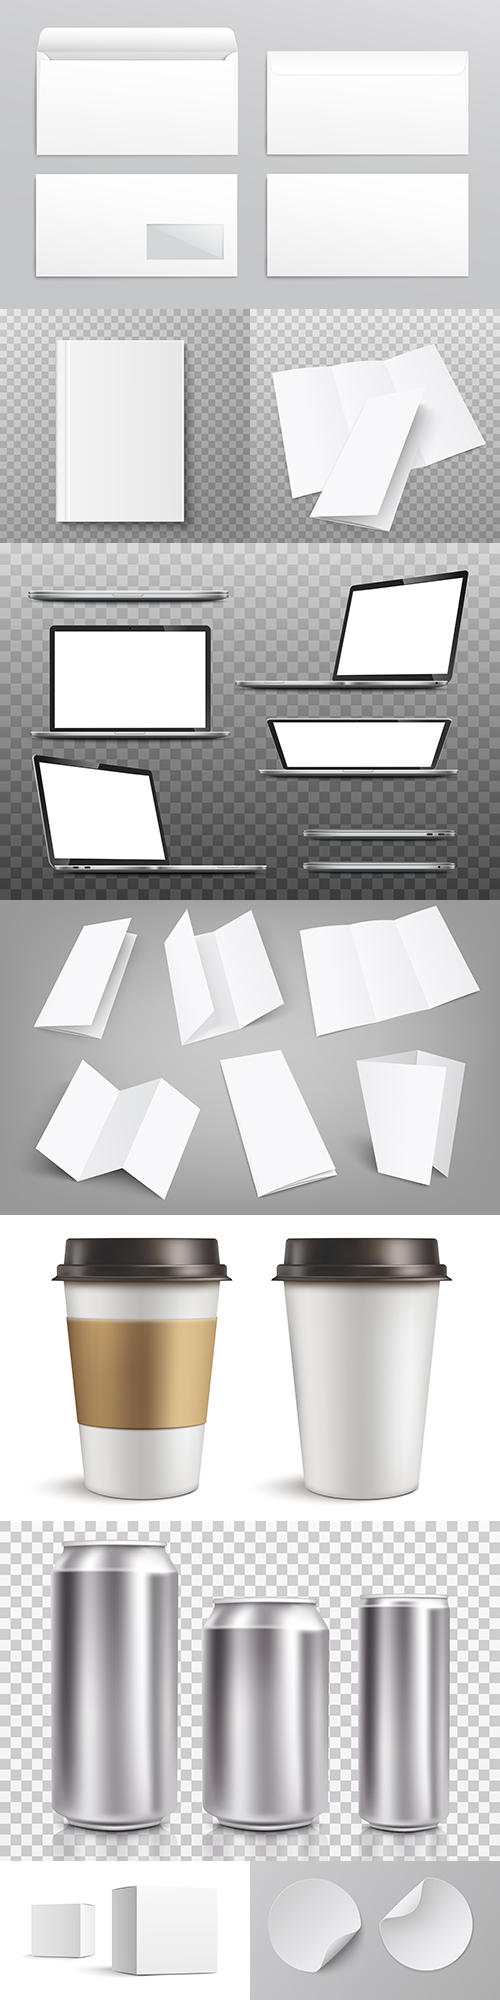 Realistic templates for design collection illustrations